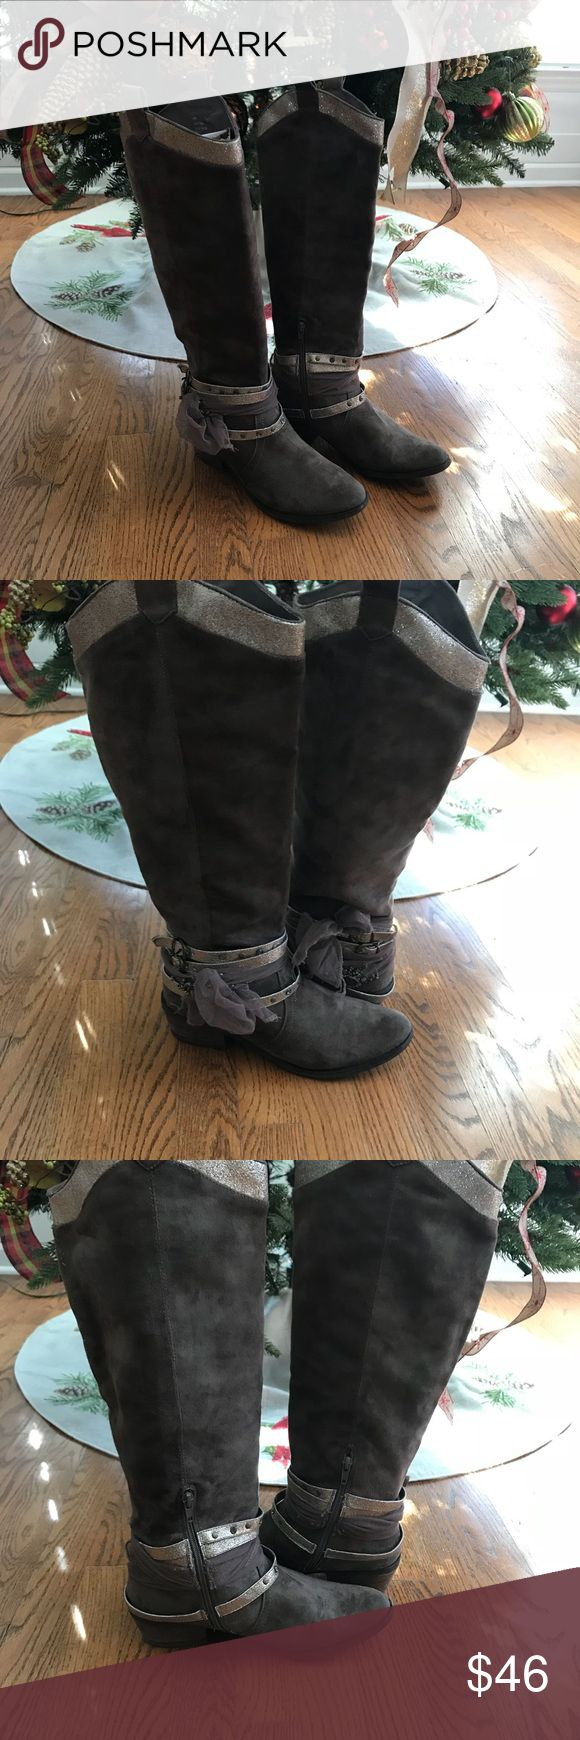 Not Rated Riding Boots Not Rated Brown Decorative Ankle Riding Boots Size 8.5 Not Rated Shoes Heeled Boots